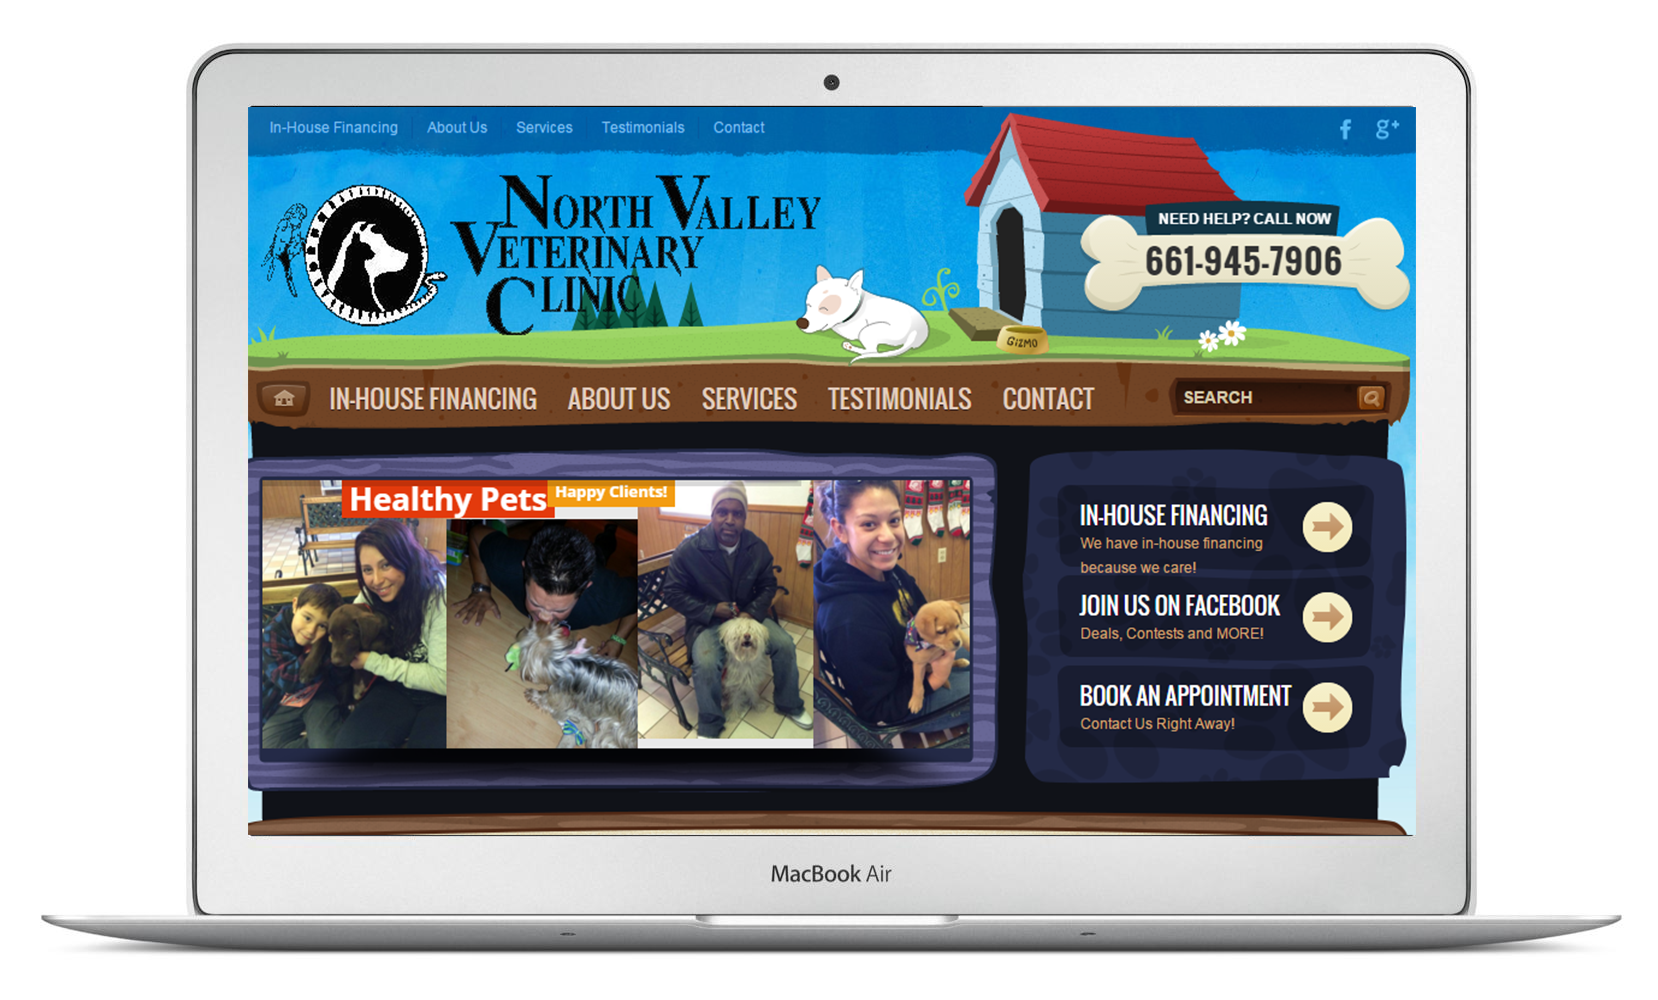 NorthValleyVeterinaryClinic.com